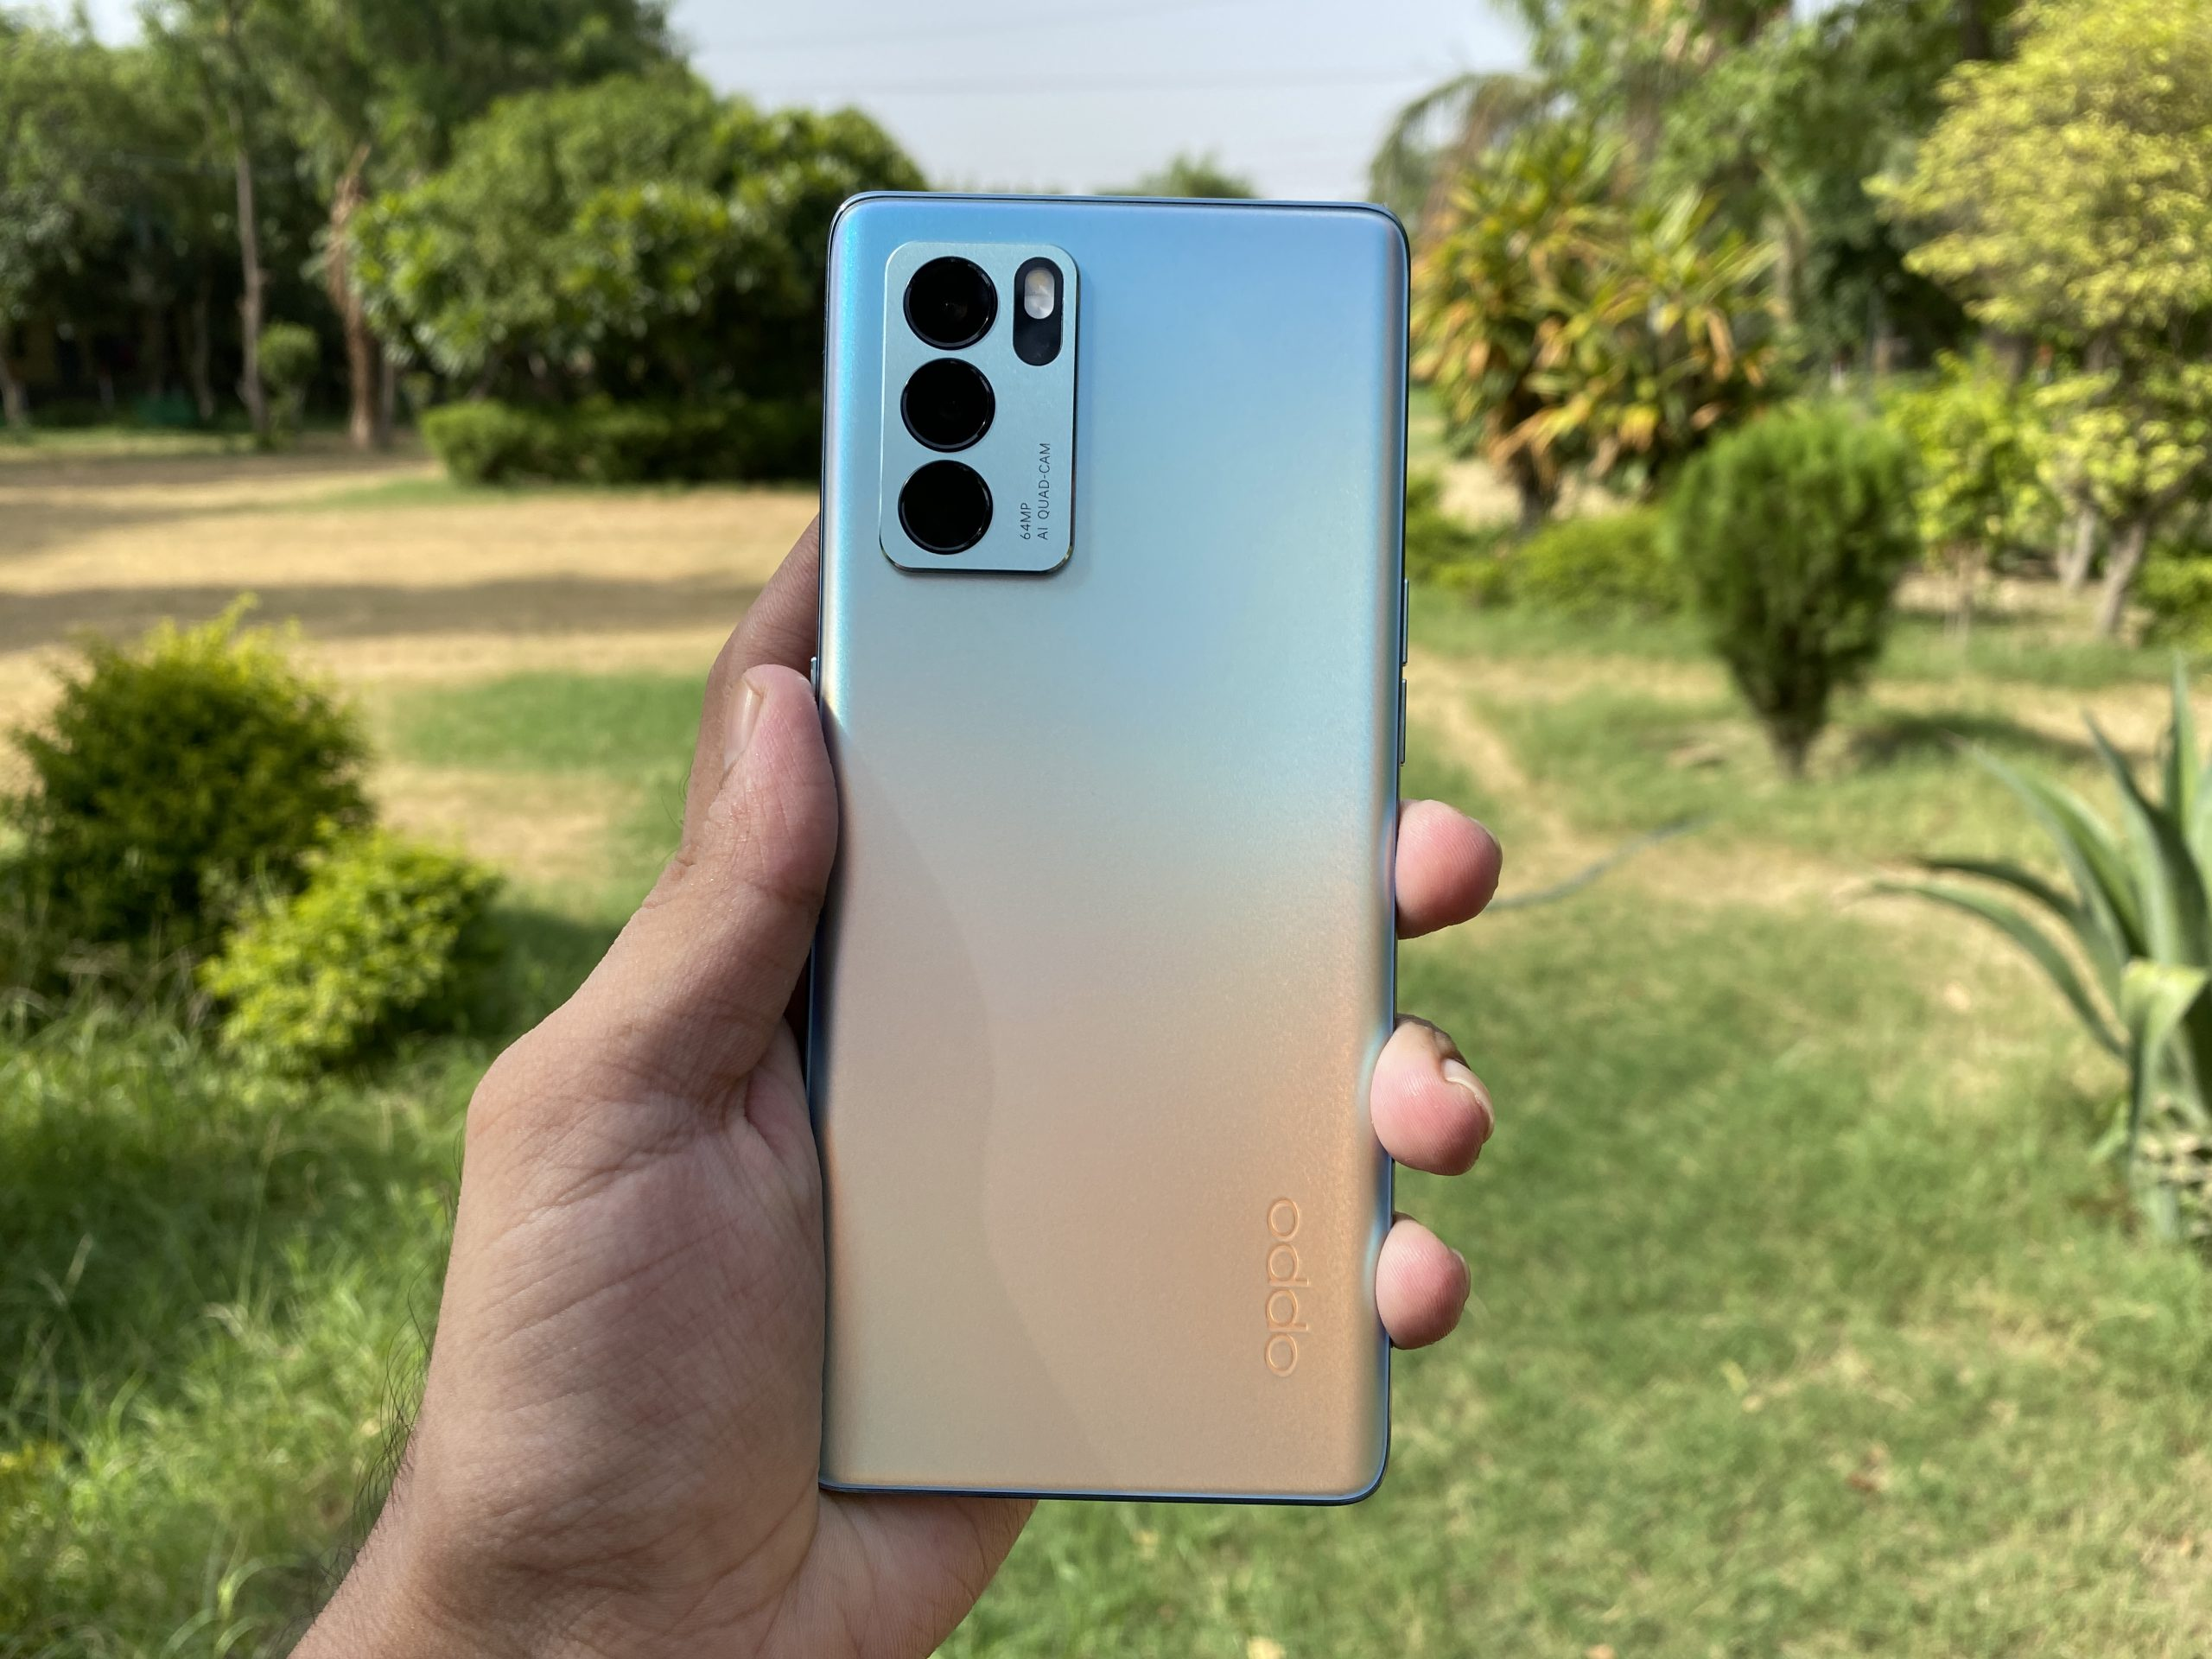 Oppo reno6 pro 5g Excellent Mobile Phones With Amazing Features